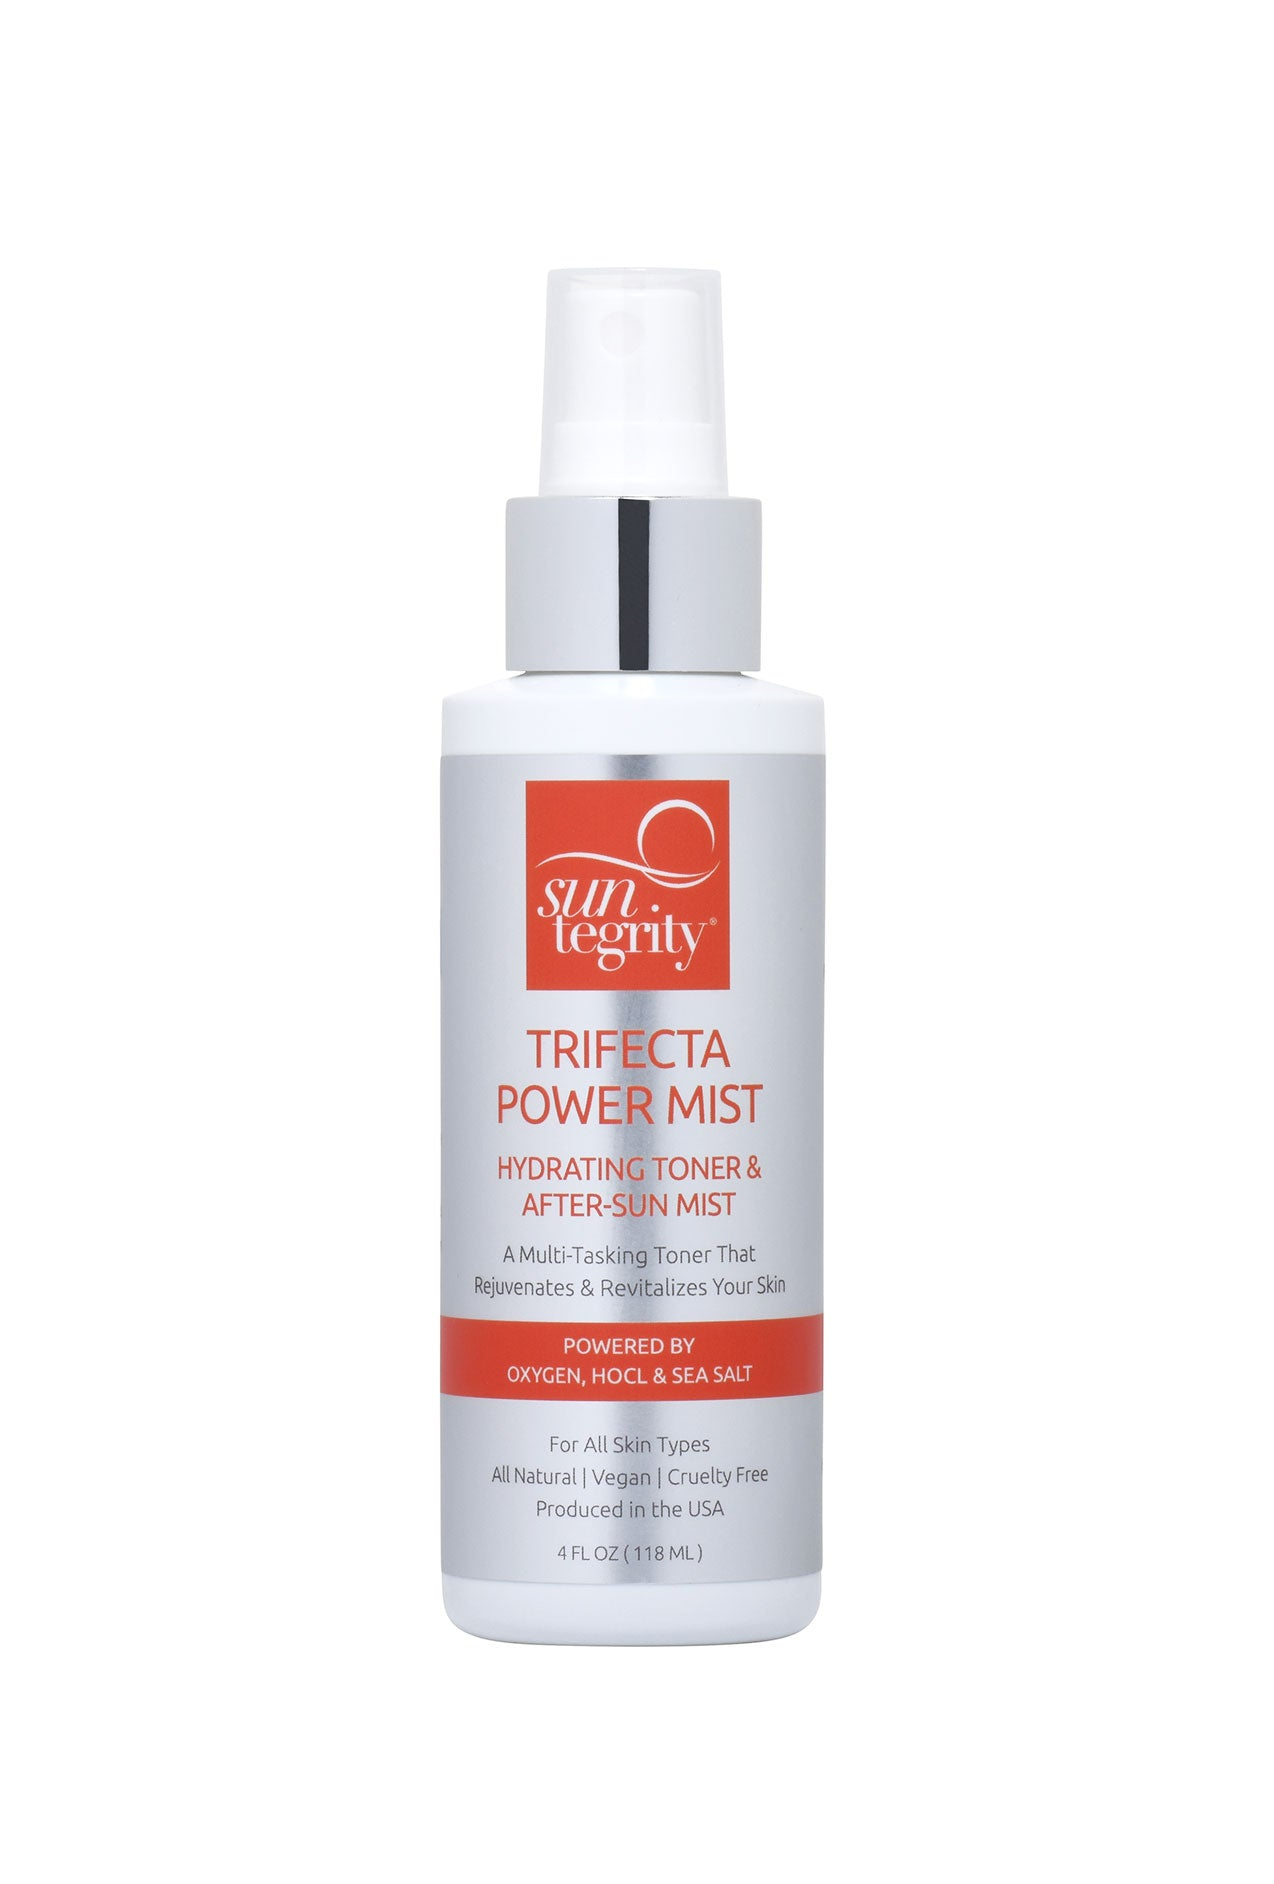 Trifecta Power Mist